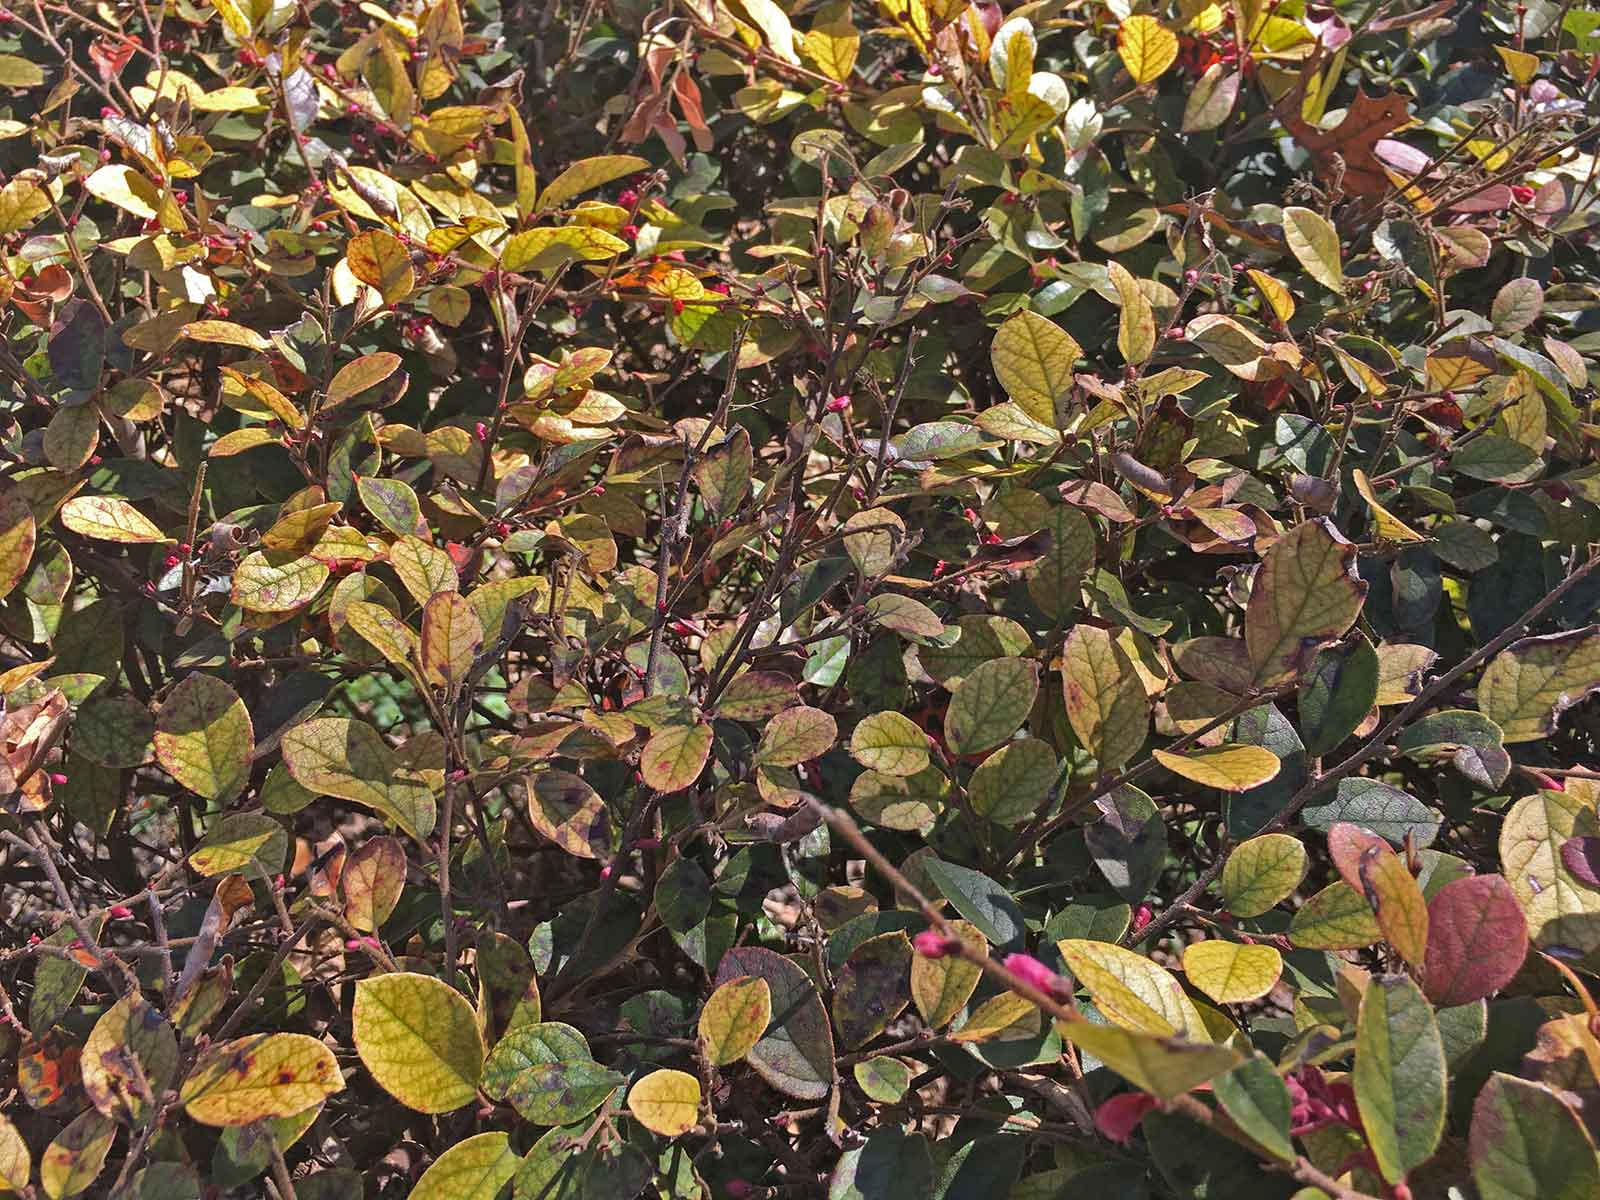 Another example of how the Loropetalum leaves turning to a dirty brown and yellow color.